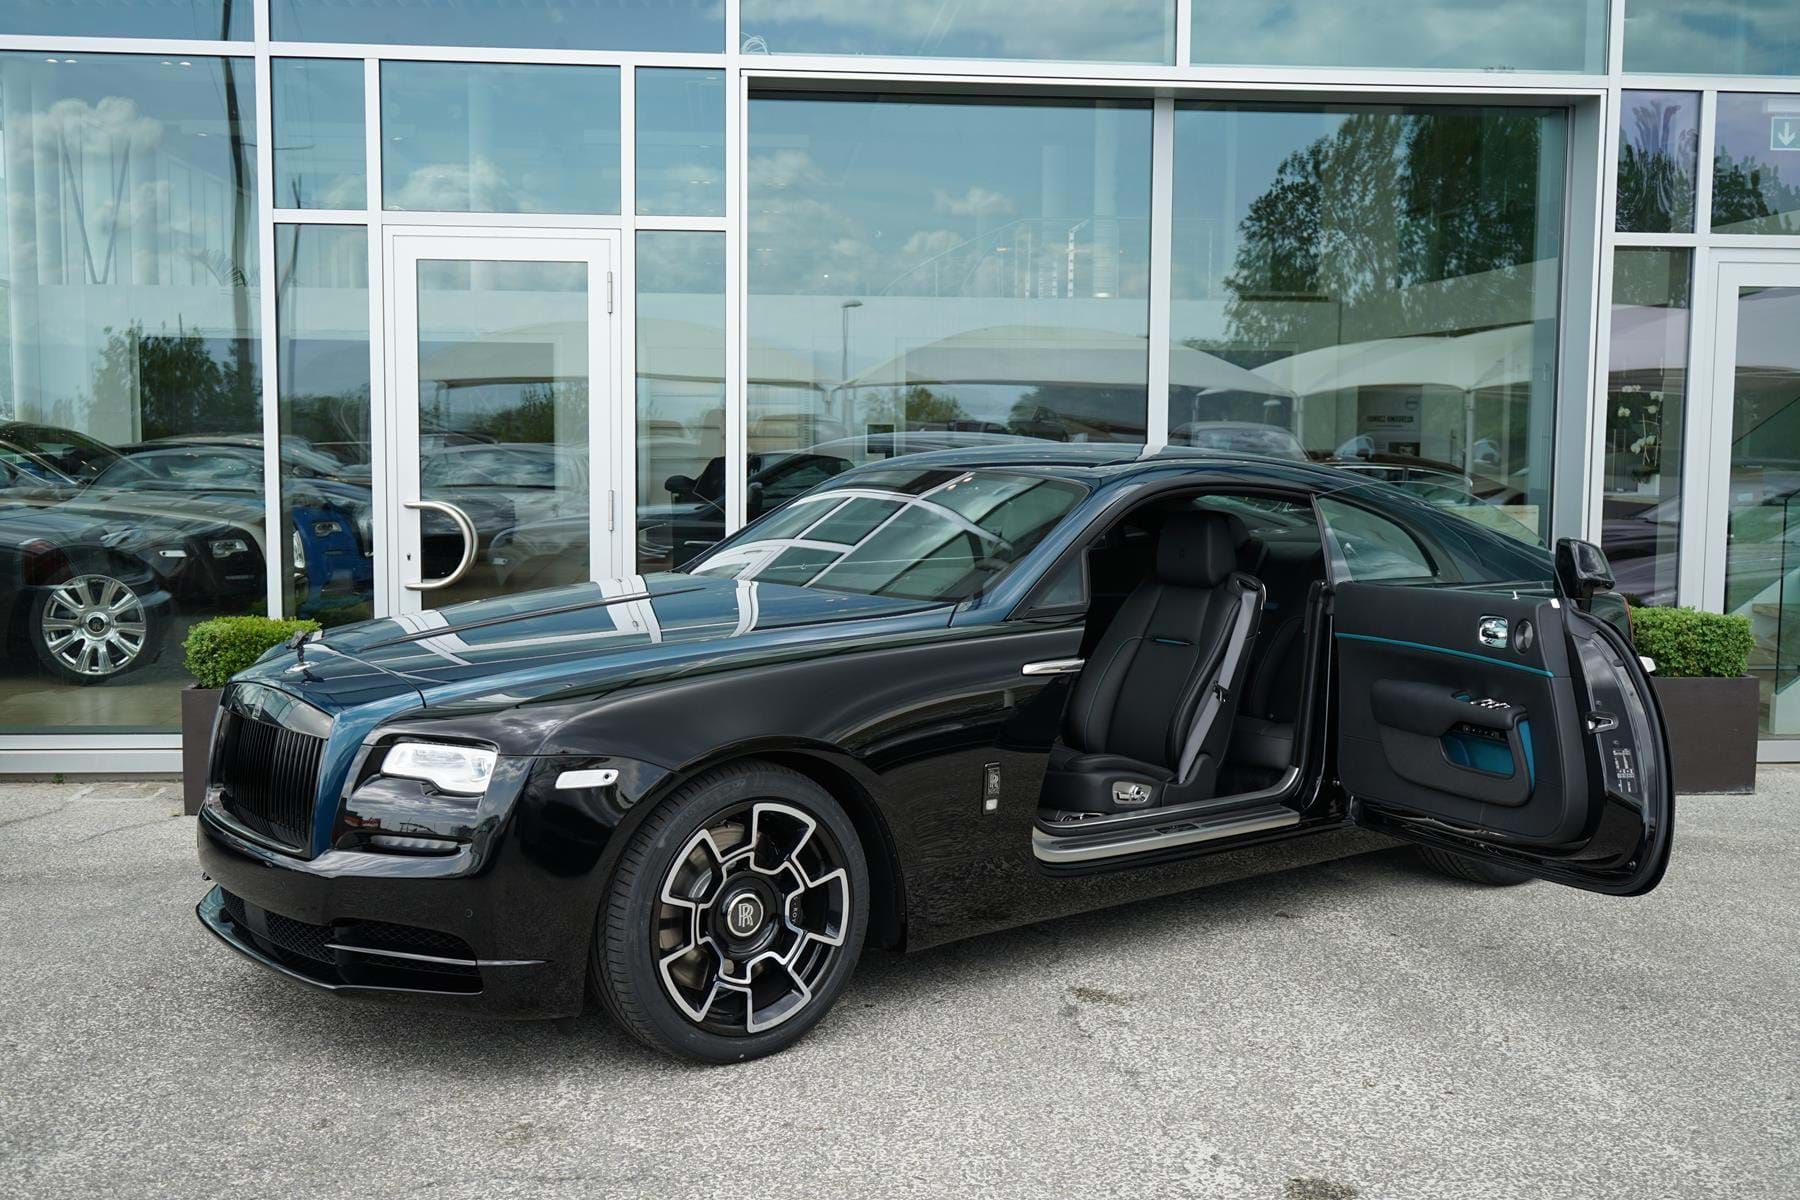 Rolls Royce Wraith Black Badge Adamas Collection One Of Fourty Pegasus Automotive Switzerland F In 2020 Rolls Royce Wraith Rolls Royce Wraith Black Rolls Royce